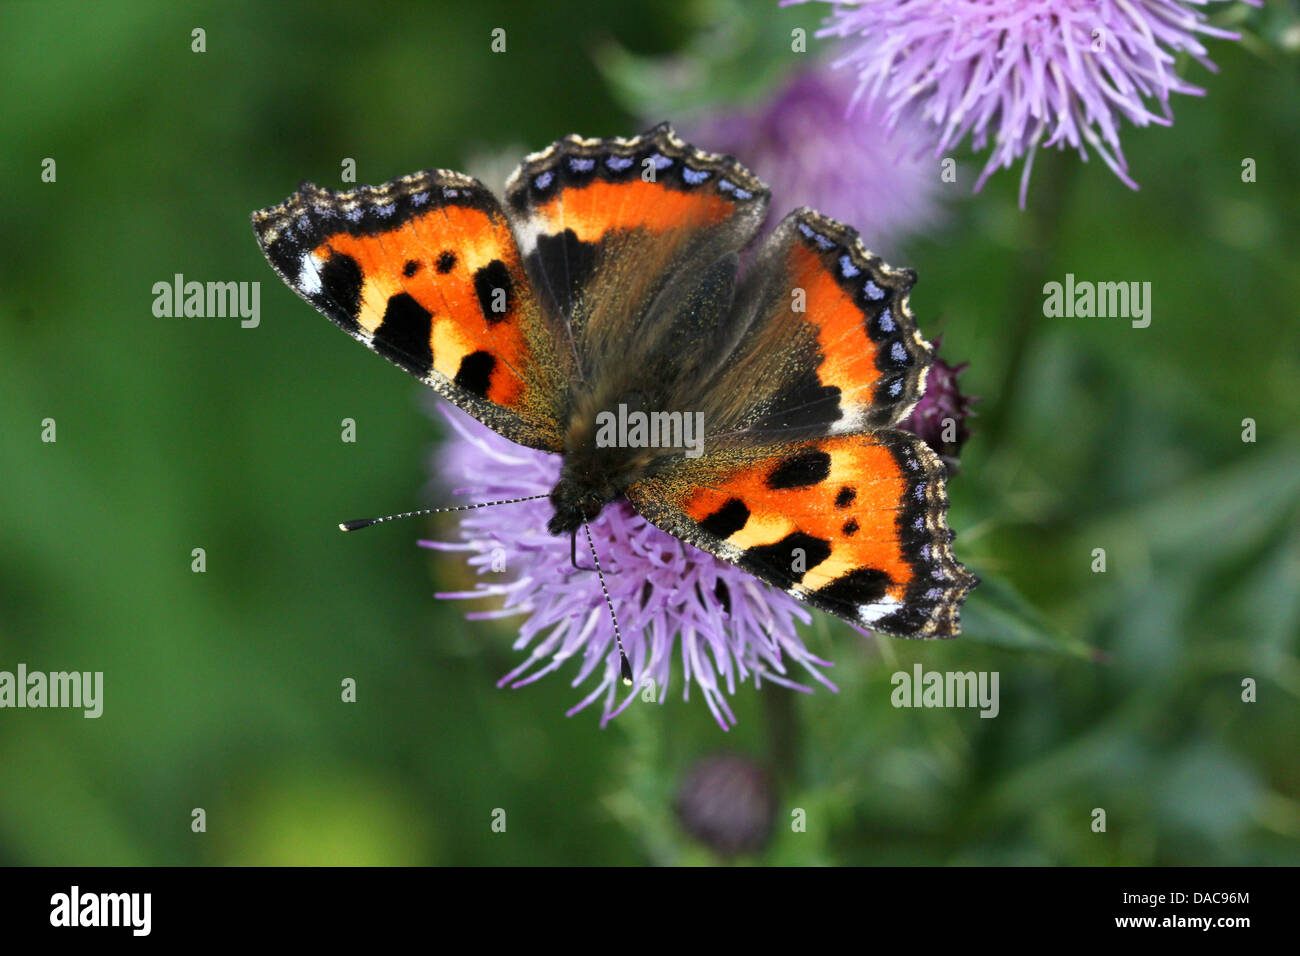 Very detailed macro close-up of a Small Tortoiseshell (Aglais urticae) butterfly posing on a flower - Stock Image